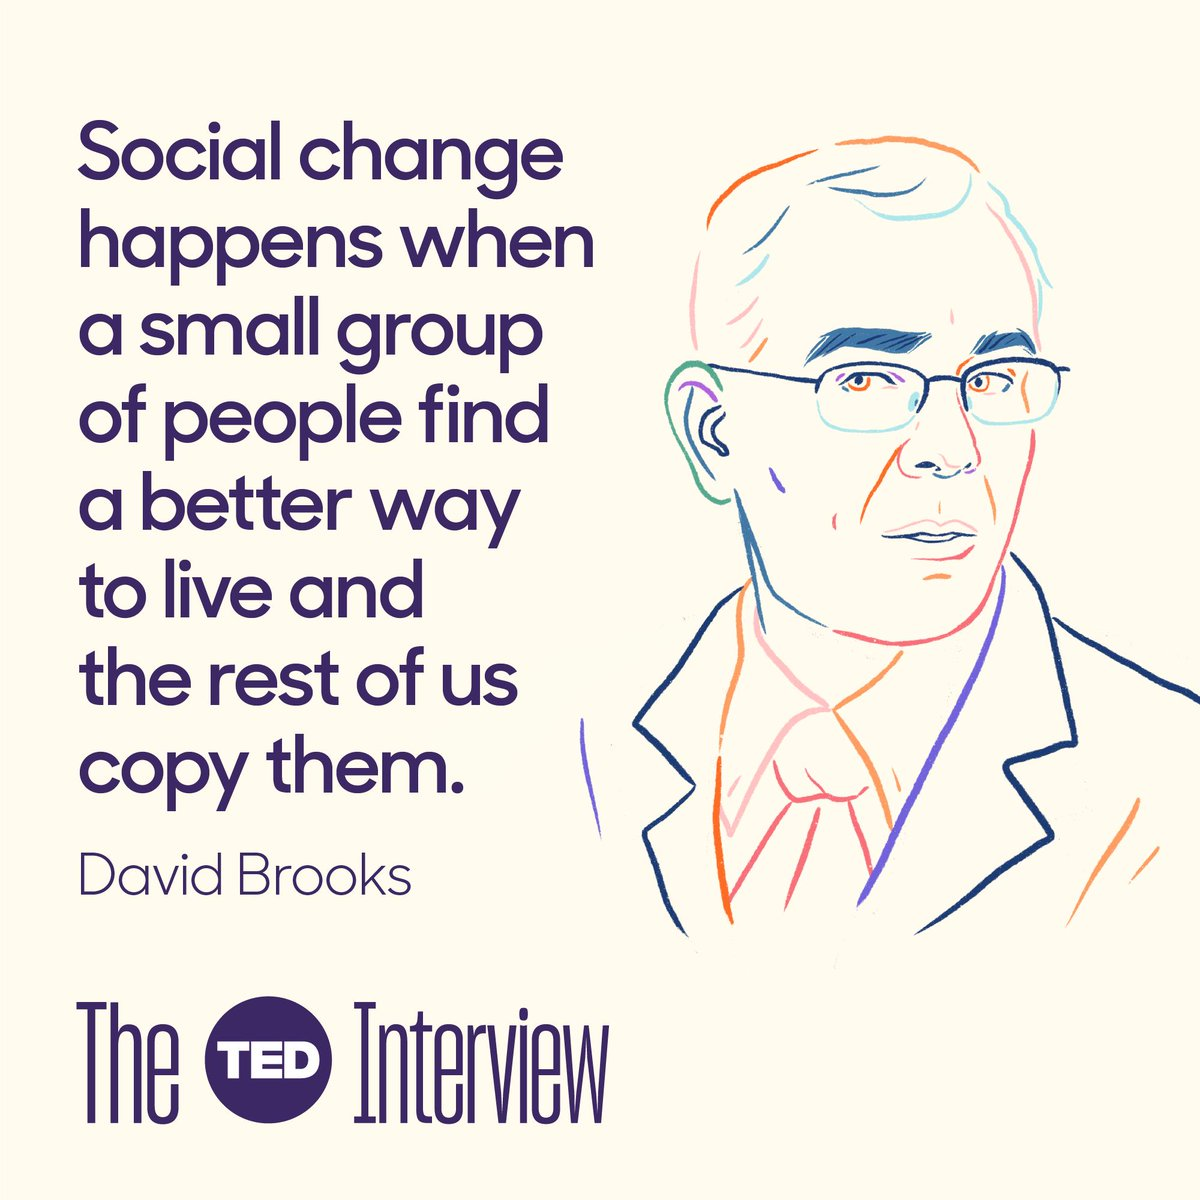 New episode of #TheTEDInterview features @nytdavidbrooks on the search for meaning in both our lives and our broken politics. https://bit.ly/2JRTk5w